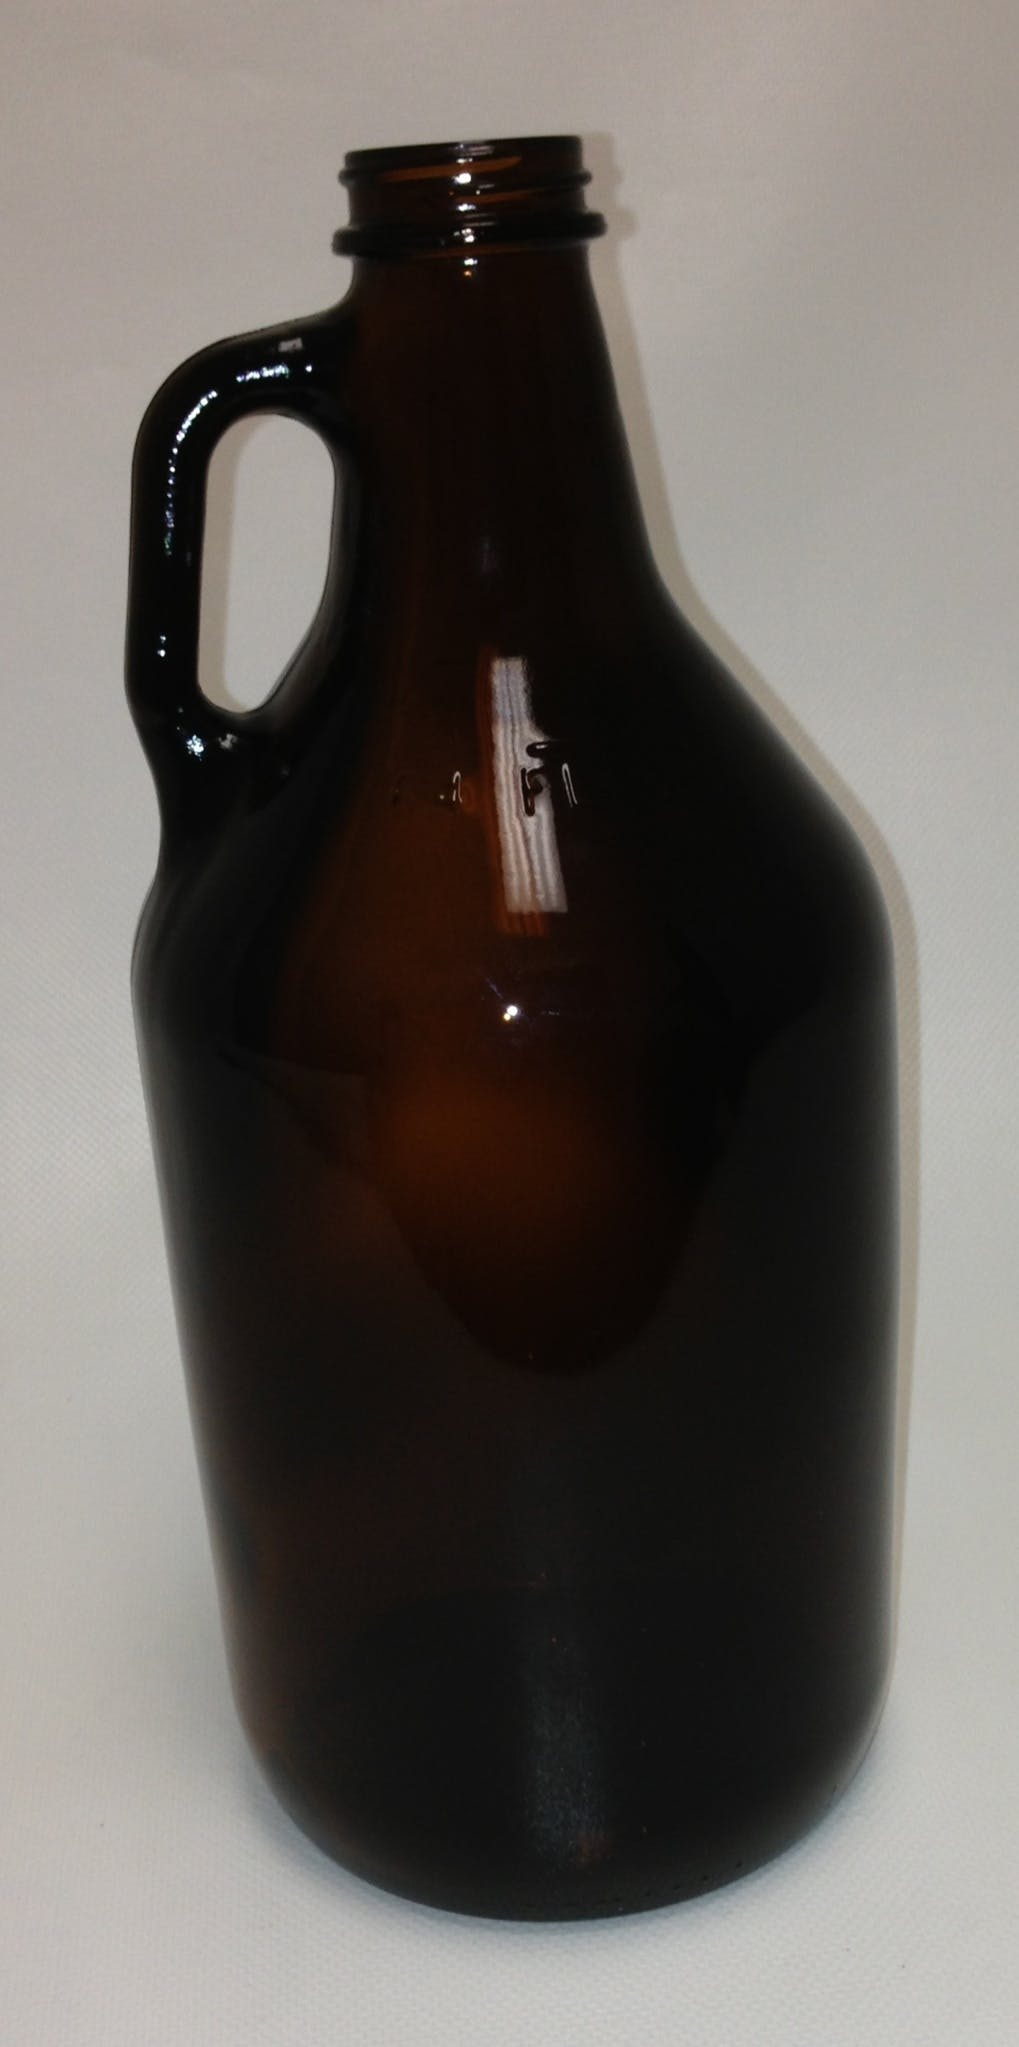 Half Gallon Amber Growler (64oz) Growler sold by Packaging Support Group